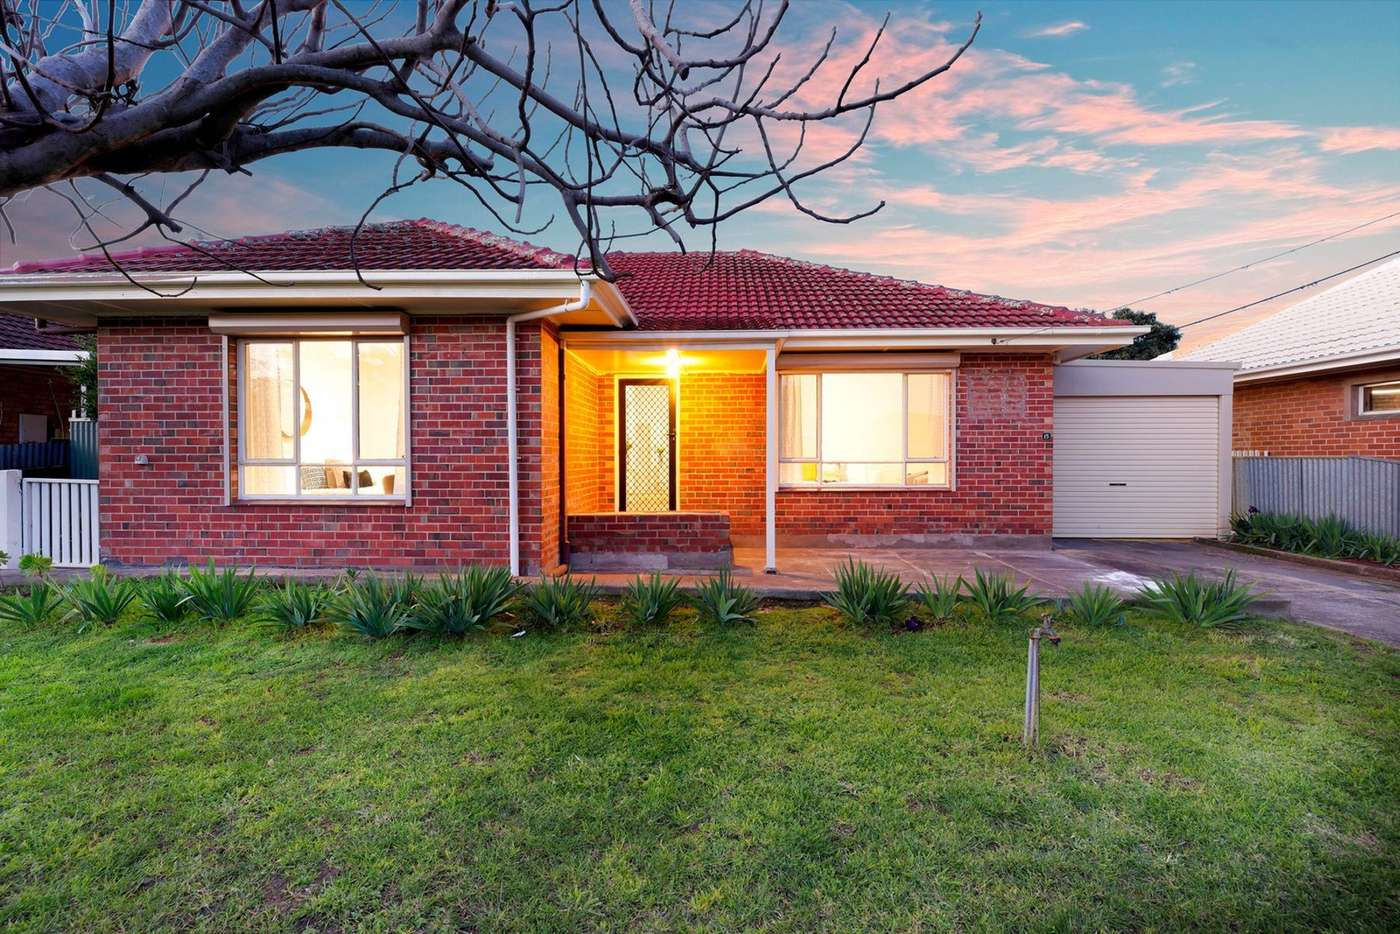 Main view of Homely house listing, 15 Raymel Crescent, Campbelltown, SA 5074